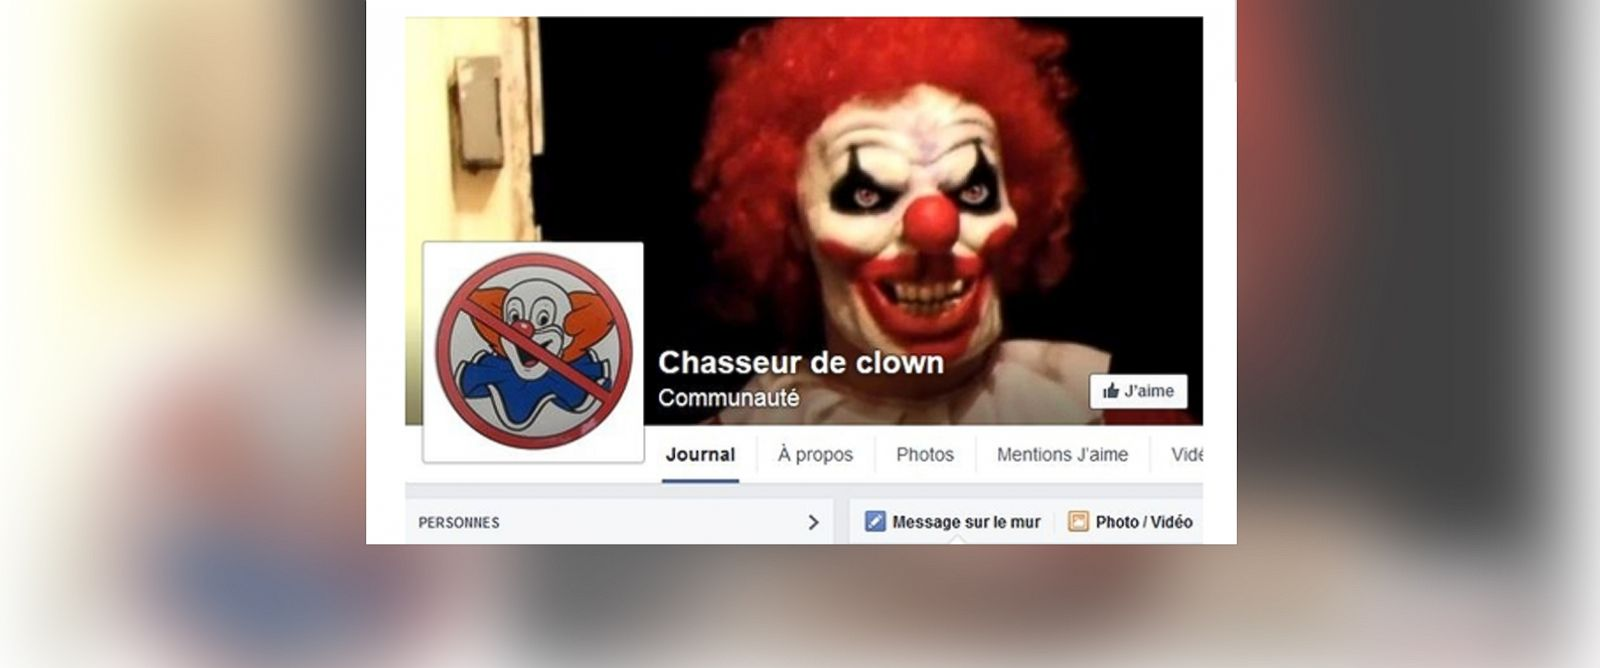 PHOTO: The National Police Ministry of Interior reports that they have received numerous reports of clowns frightening passersby in parts of France, Oct. 27, 2014.